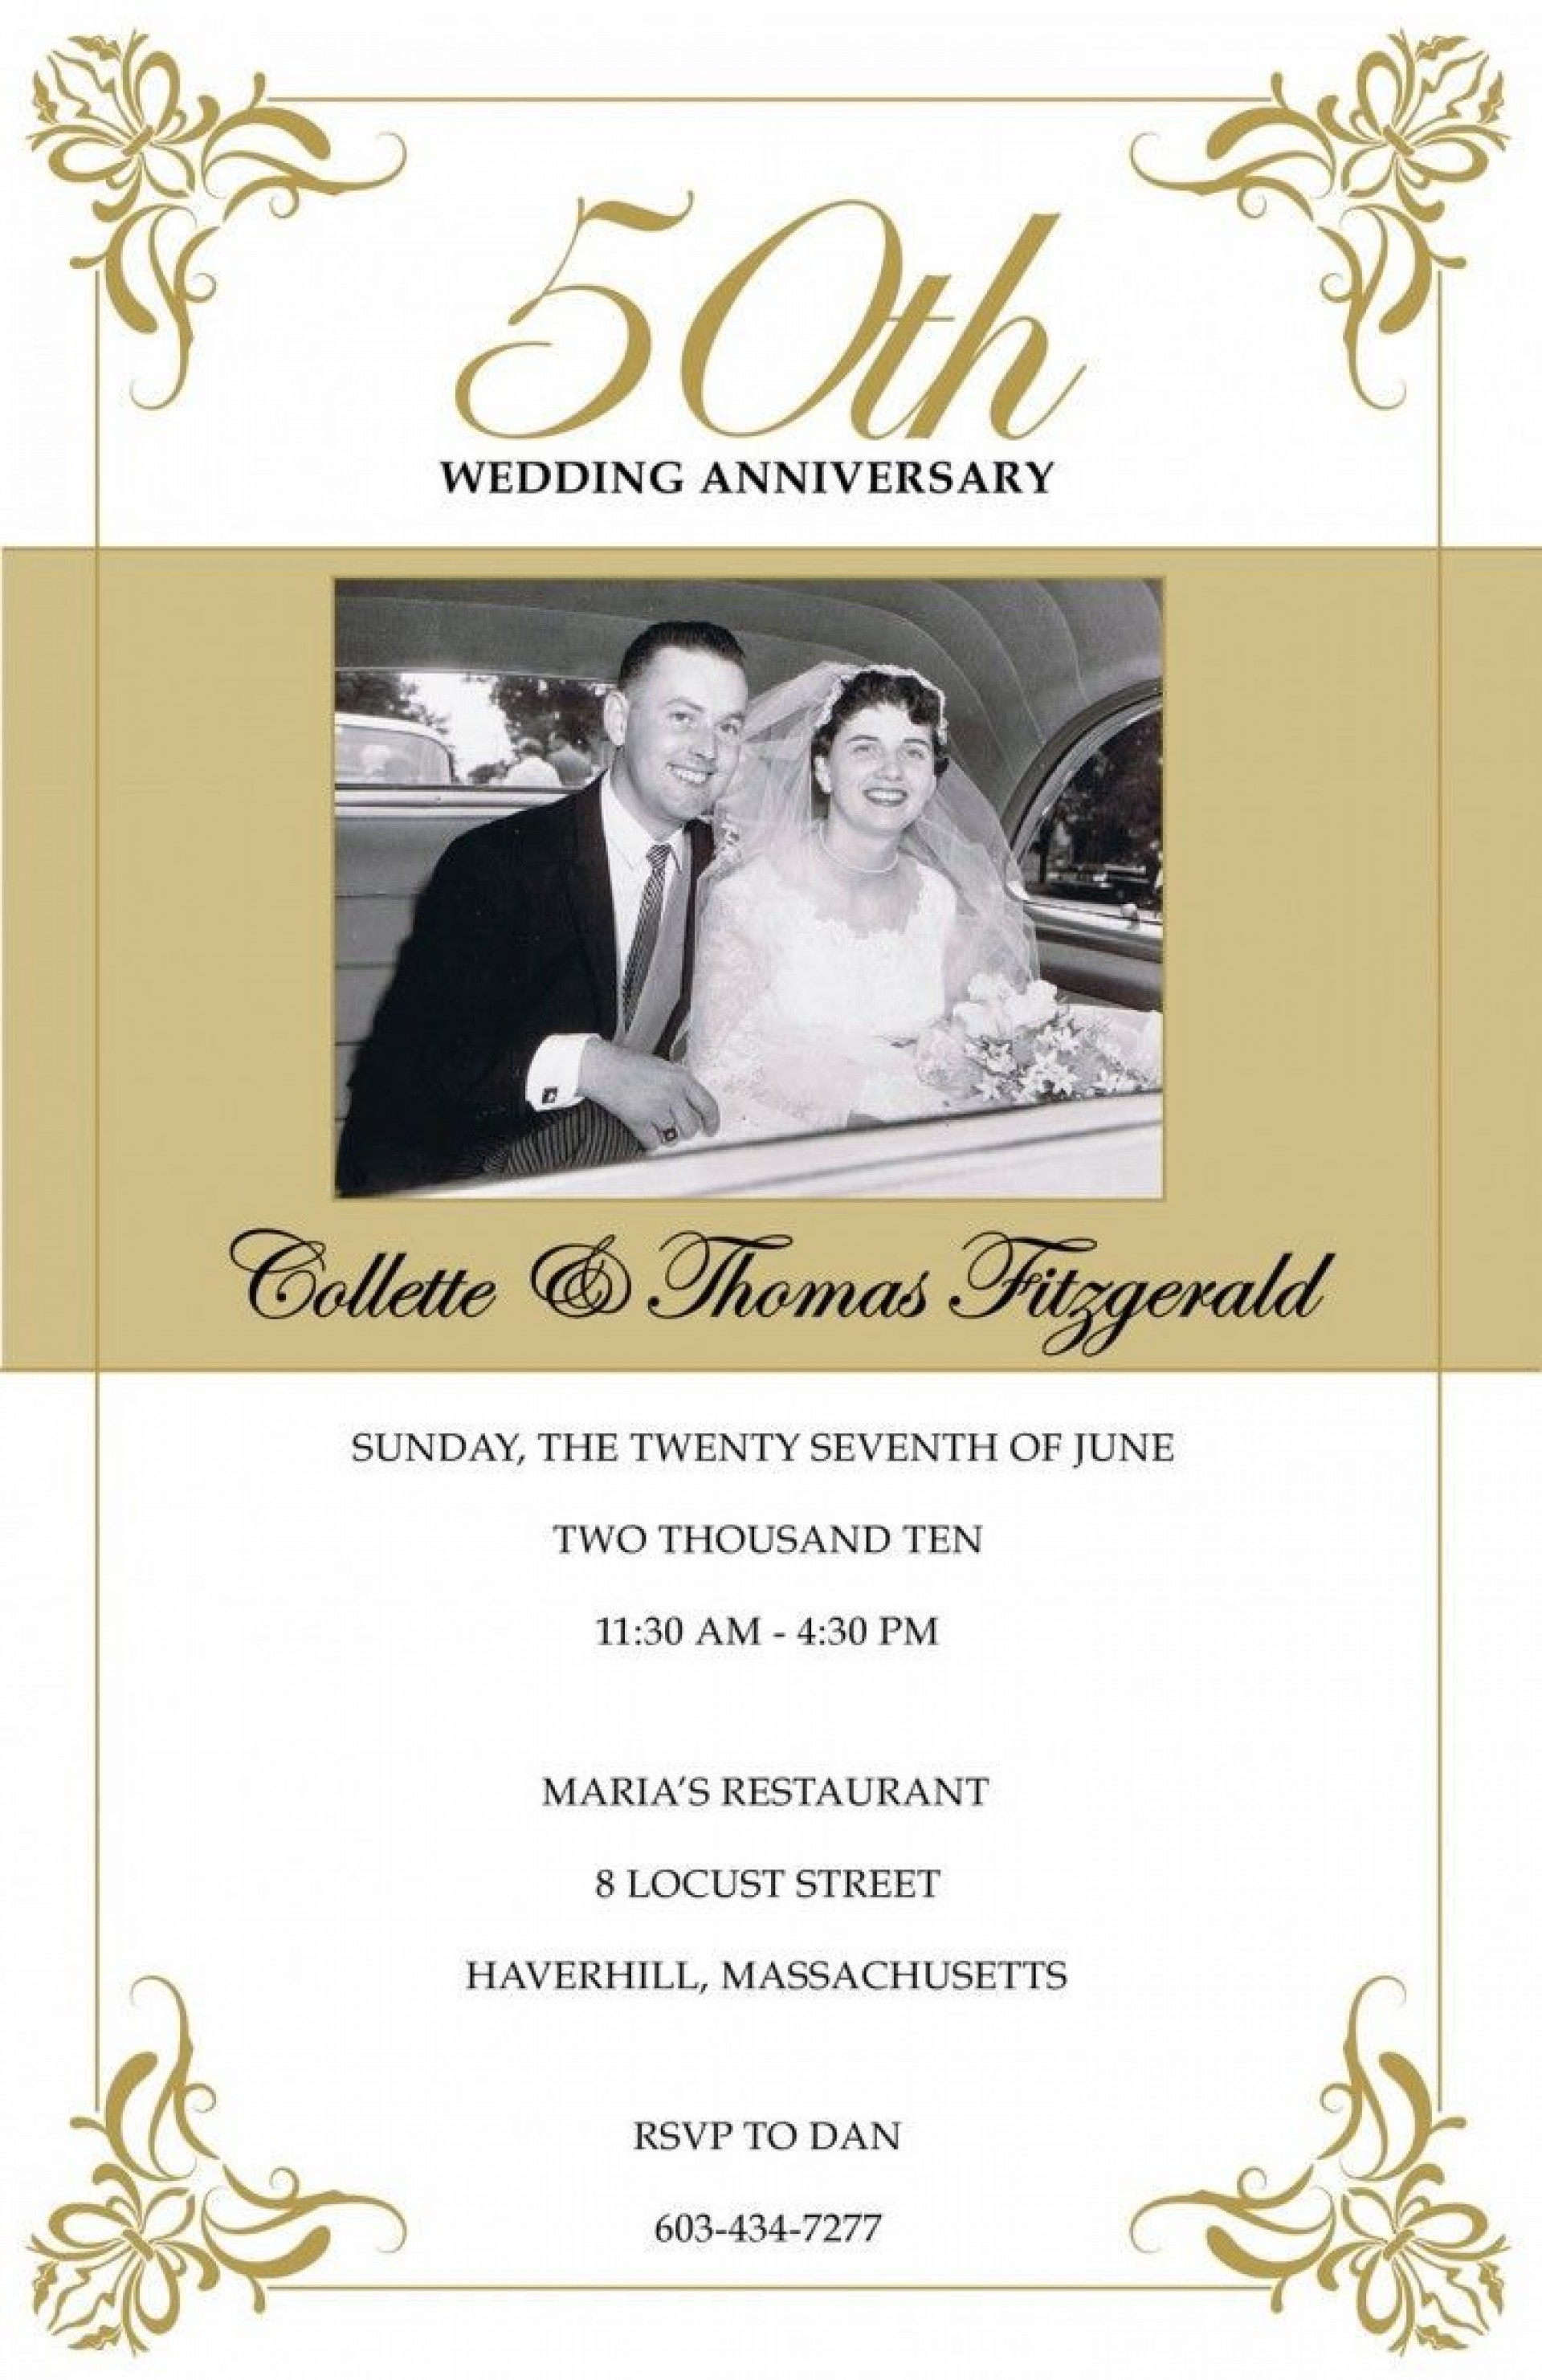 003 Awful 50th Wedding Anniversary Invitation Sample Highest Clarity  Samples Free Party Template Card Idea1920